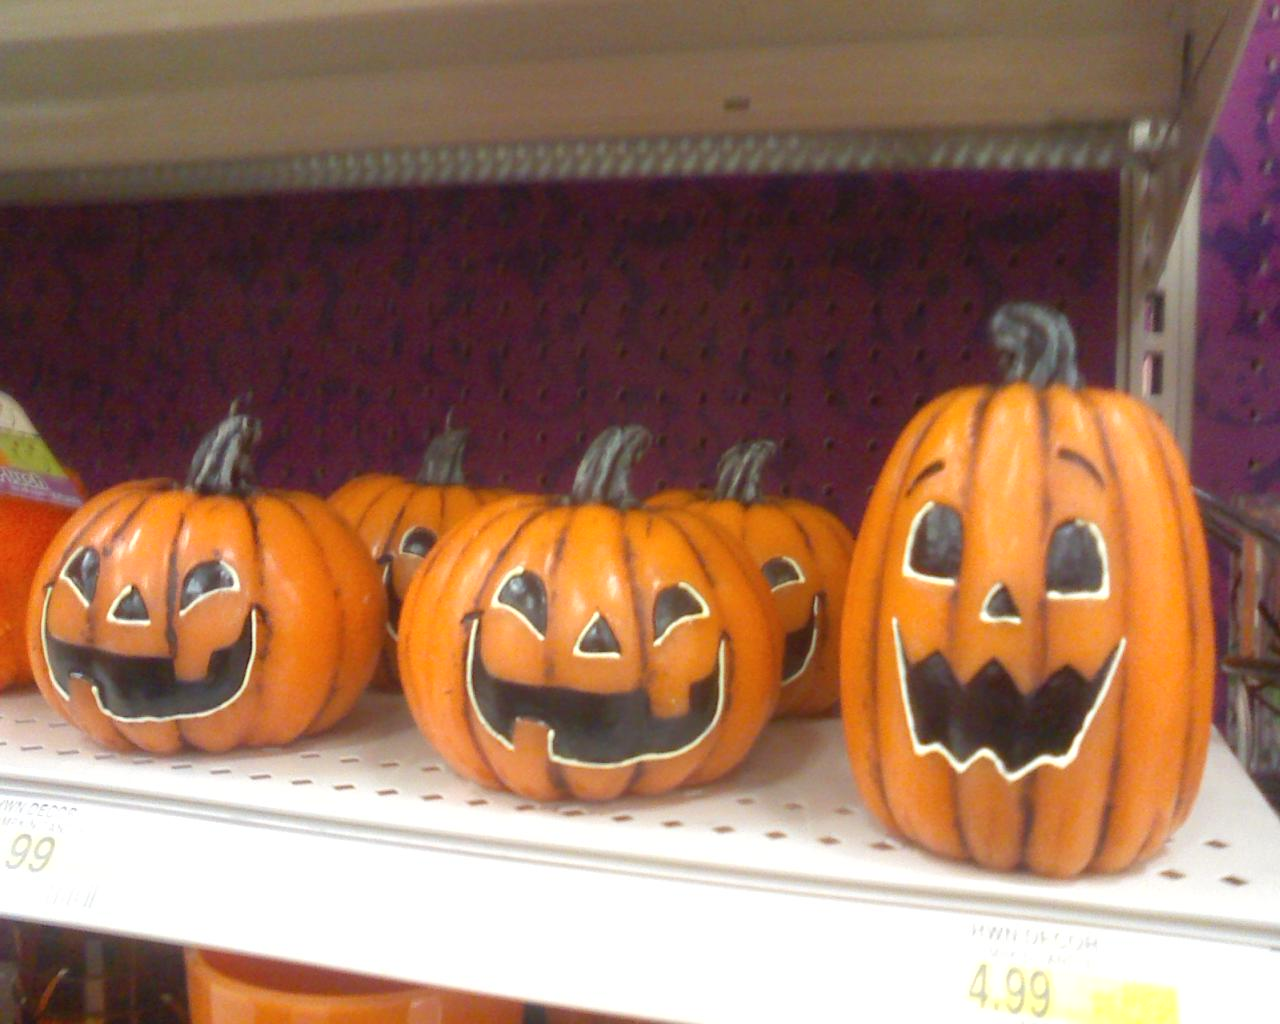 The Spooky Vegan: Halloween Things at Target and Jo-Ann Fabrics